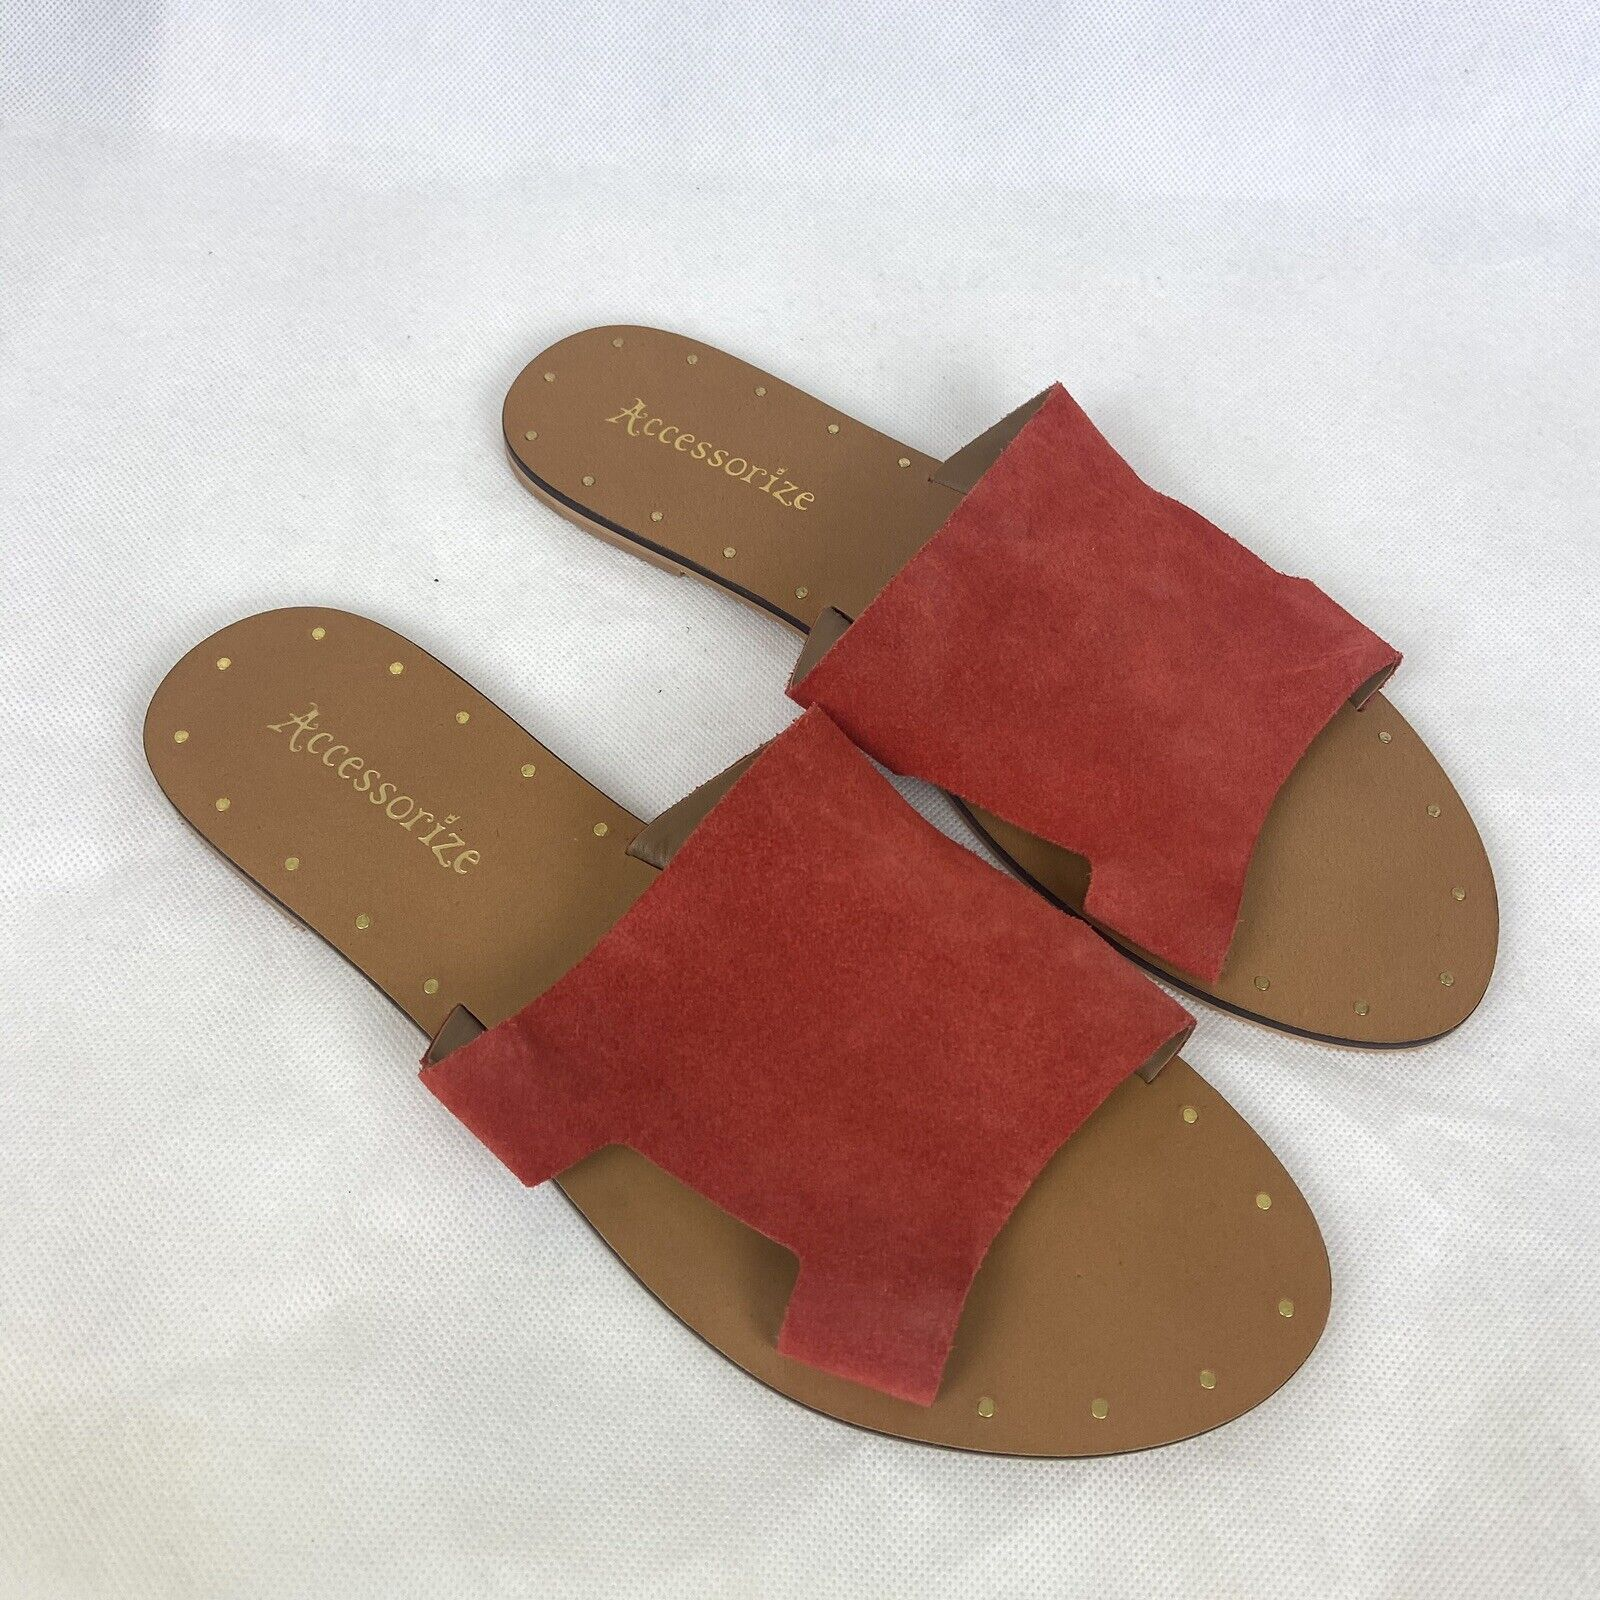 Accessorize Sandals 8 Orange Red Suede Slides Suede Leather Flat Shoes Holiday